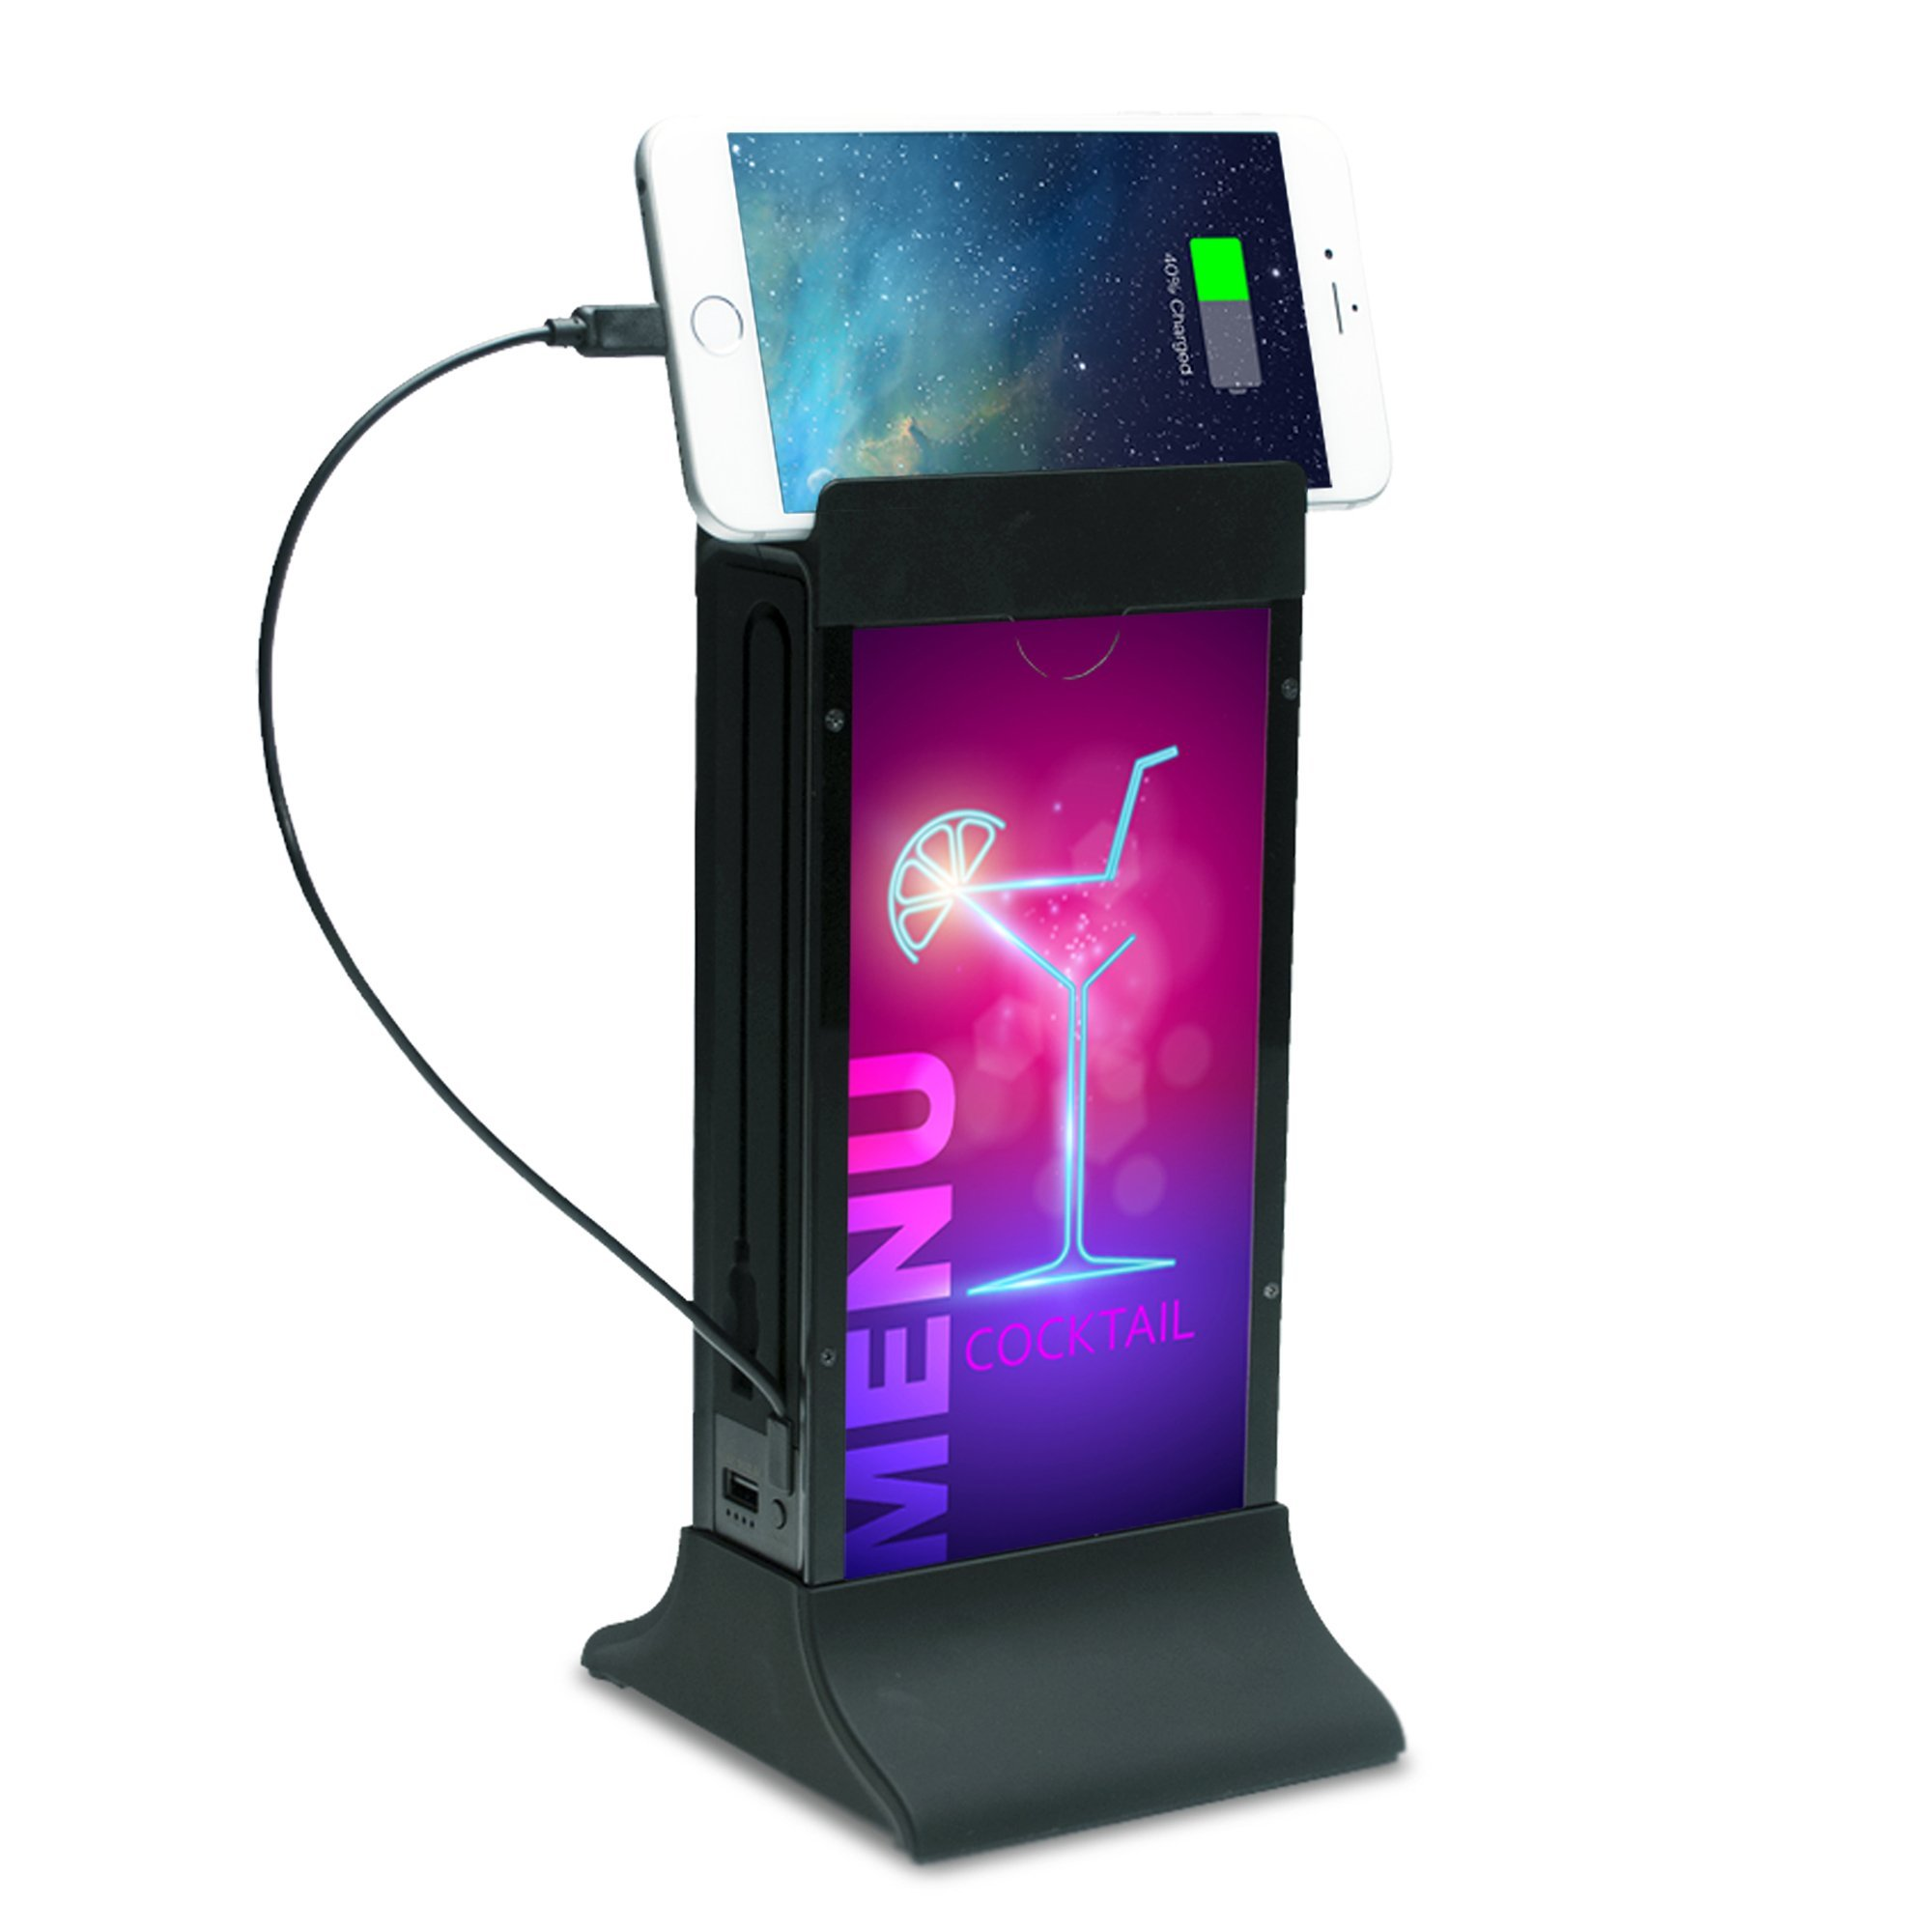 CTA Digital Table Tent Power Station 20,800 mAh for Bars/Restaurants by CTA Digital (Image #1)